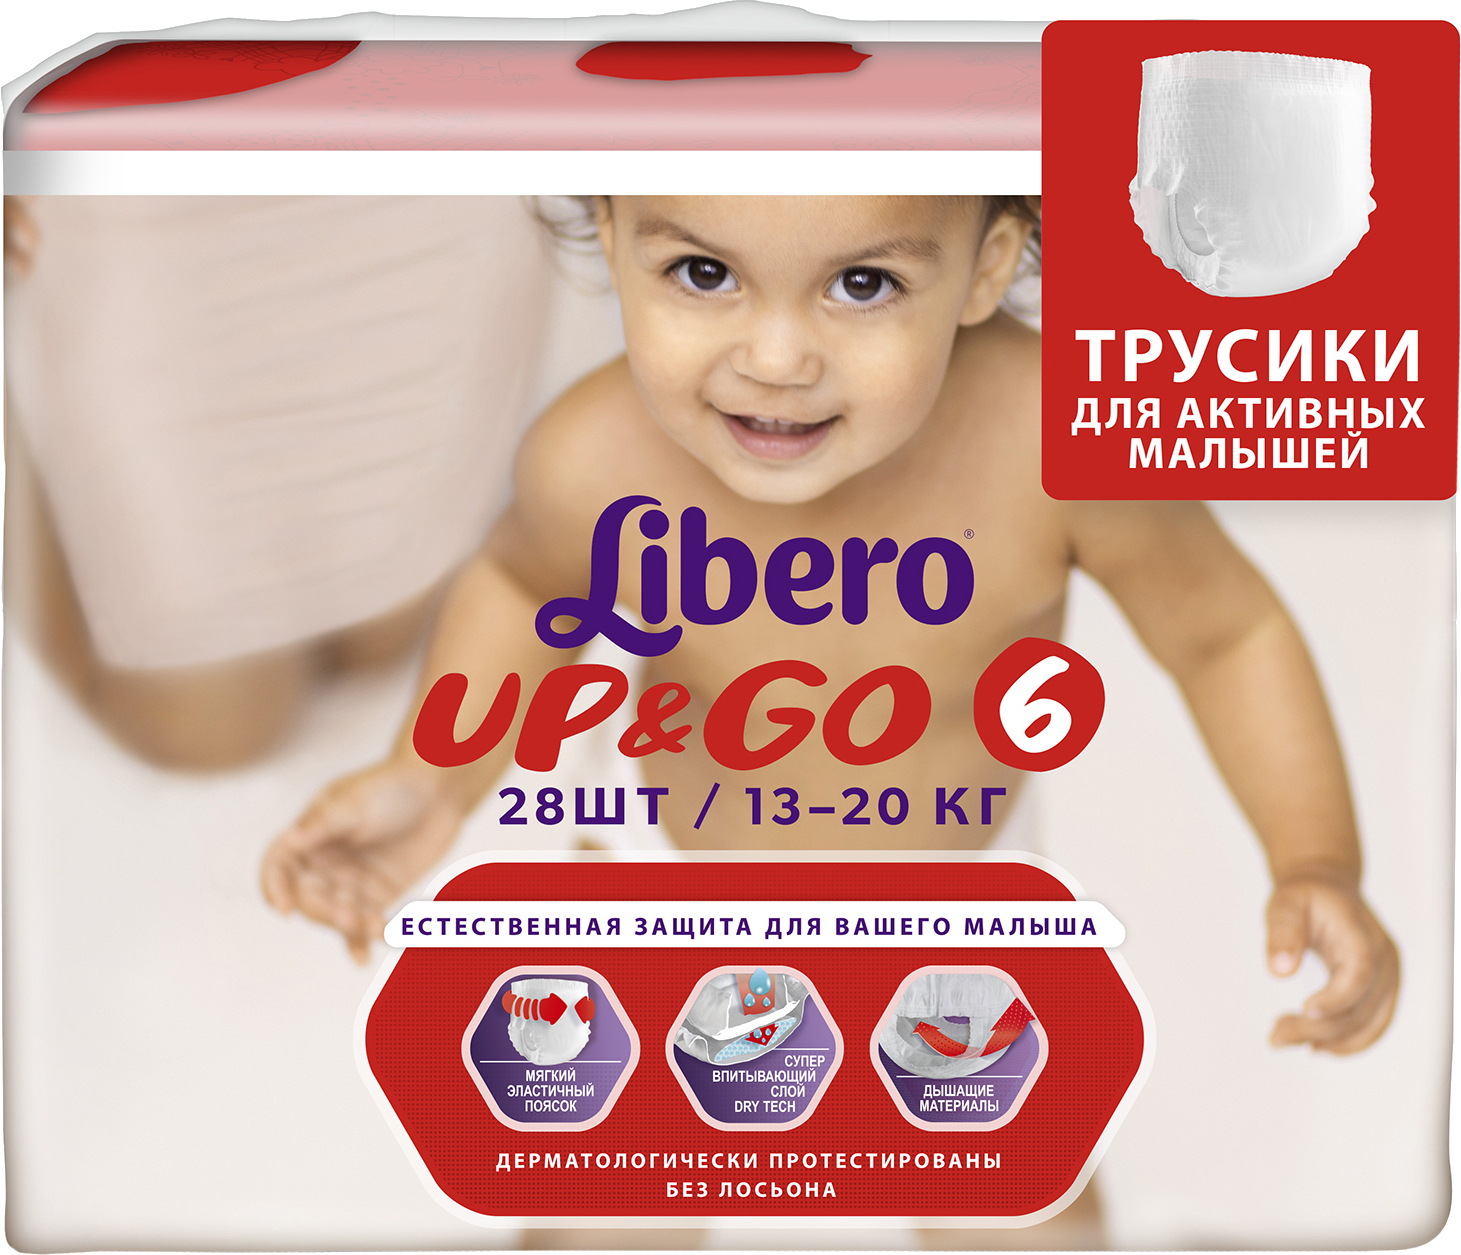 Up & Go 6 (13-20 кг) 28 шт 01.00.22.5589